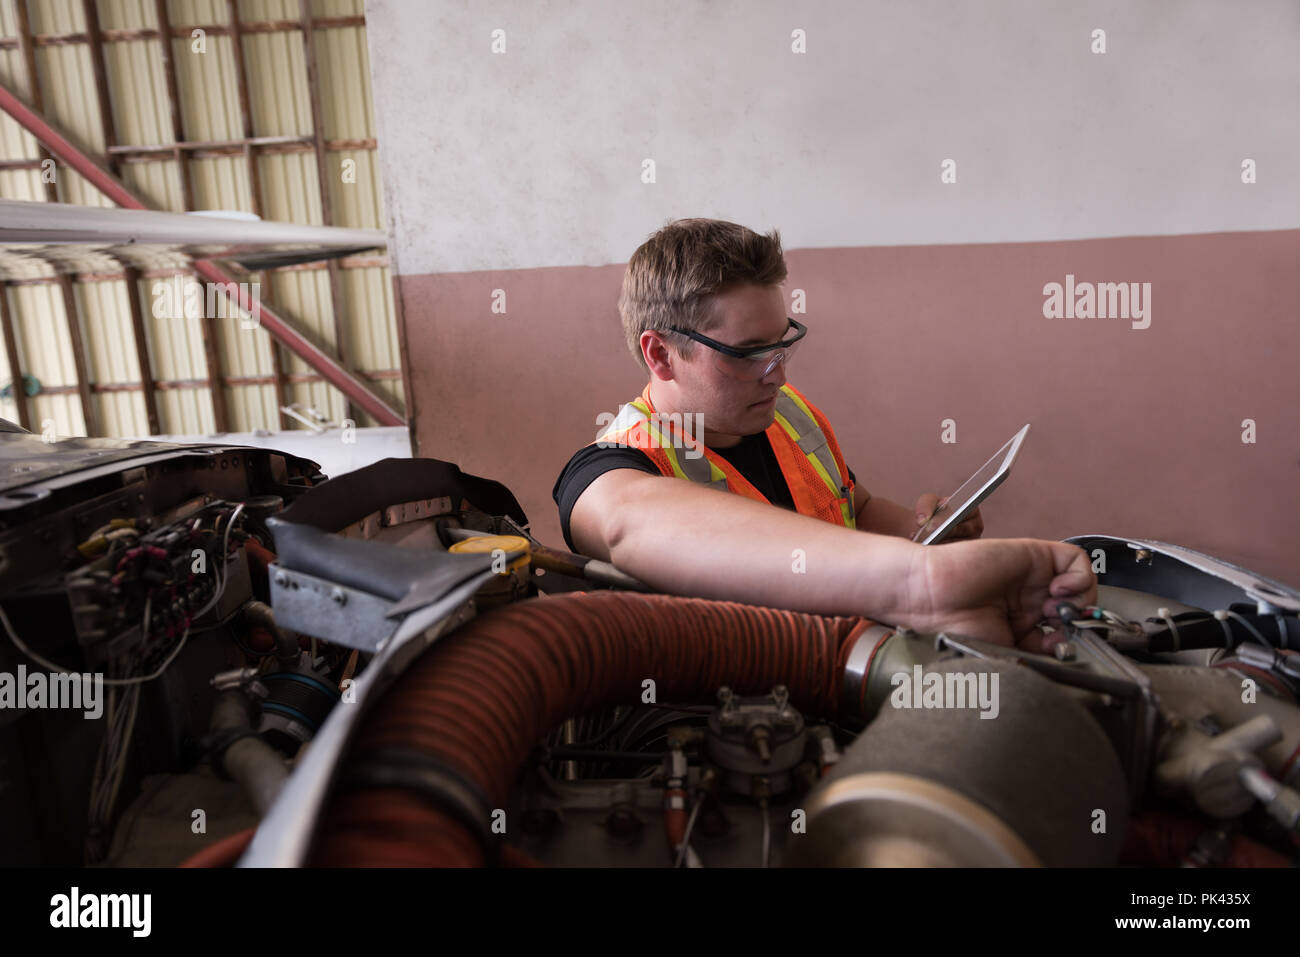 Mechanic using digital tablet while servicing aircraft engine - Stock Image